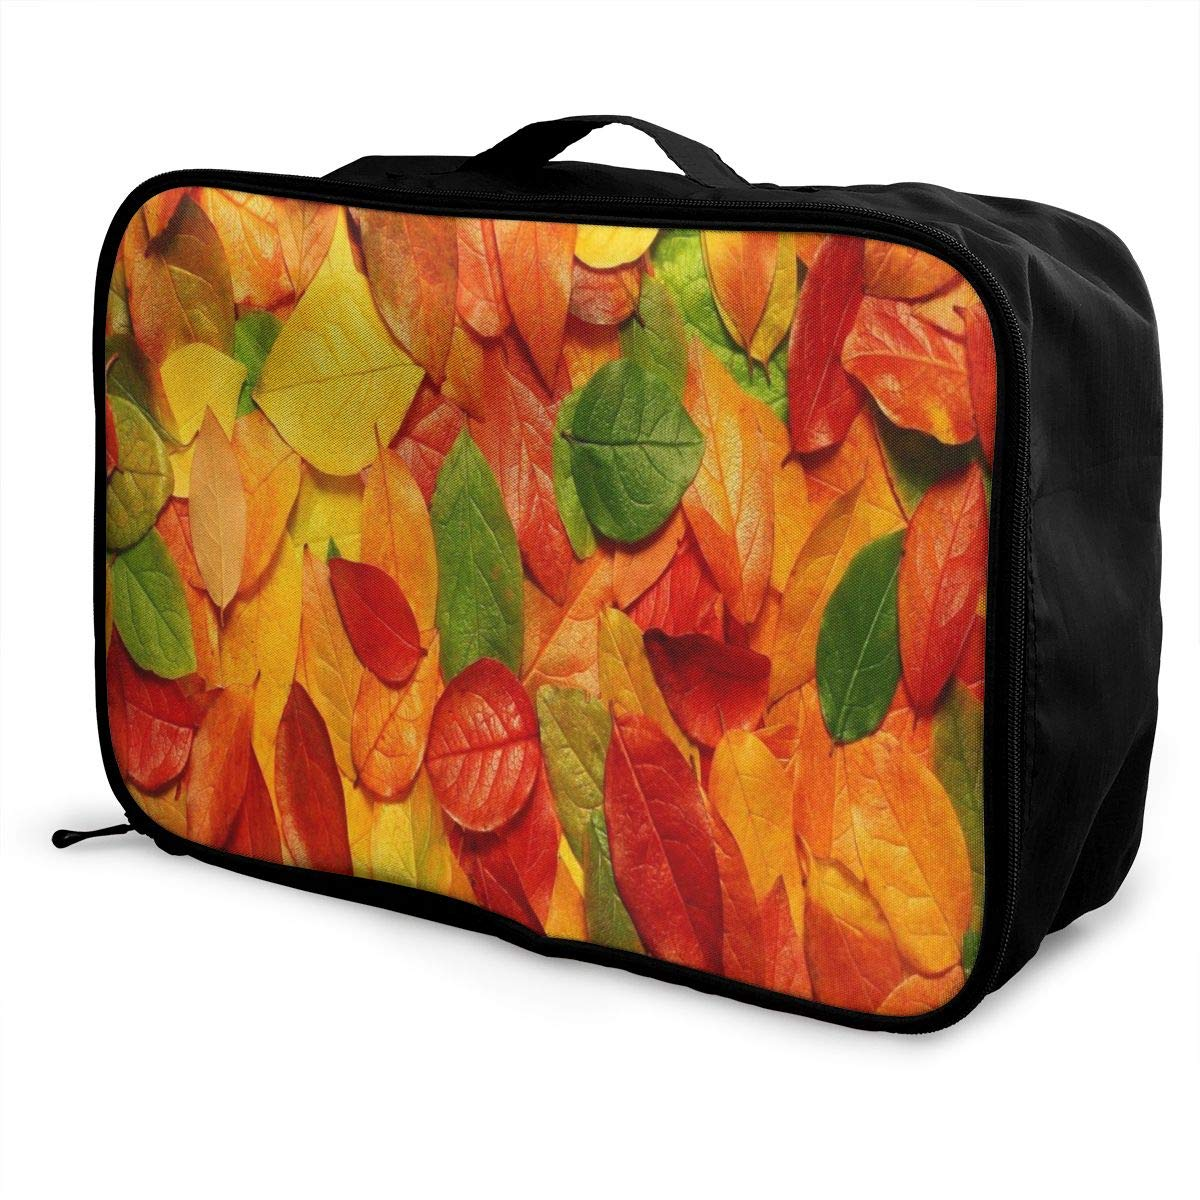 Lightweight Large Capacity Portable Luggage Bag Cute Autumn Leaves Travel Waterproof Foldable Storage Carry Tote Bag